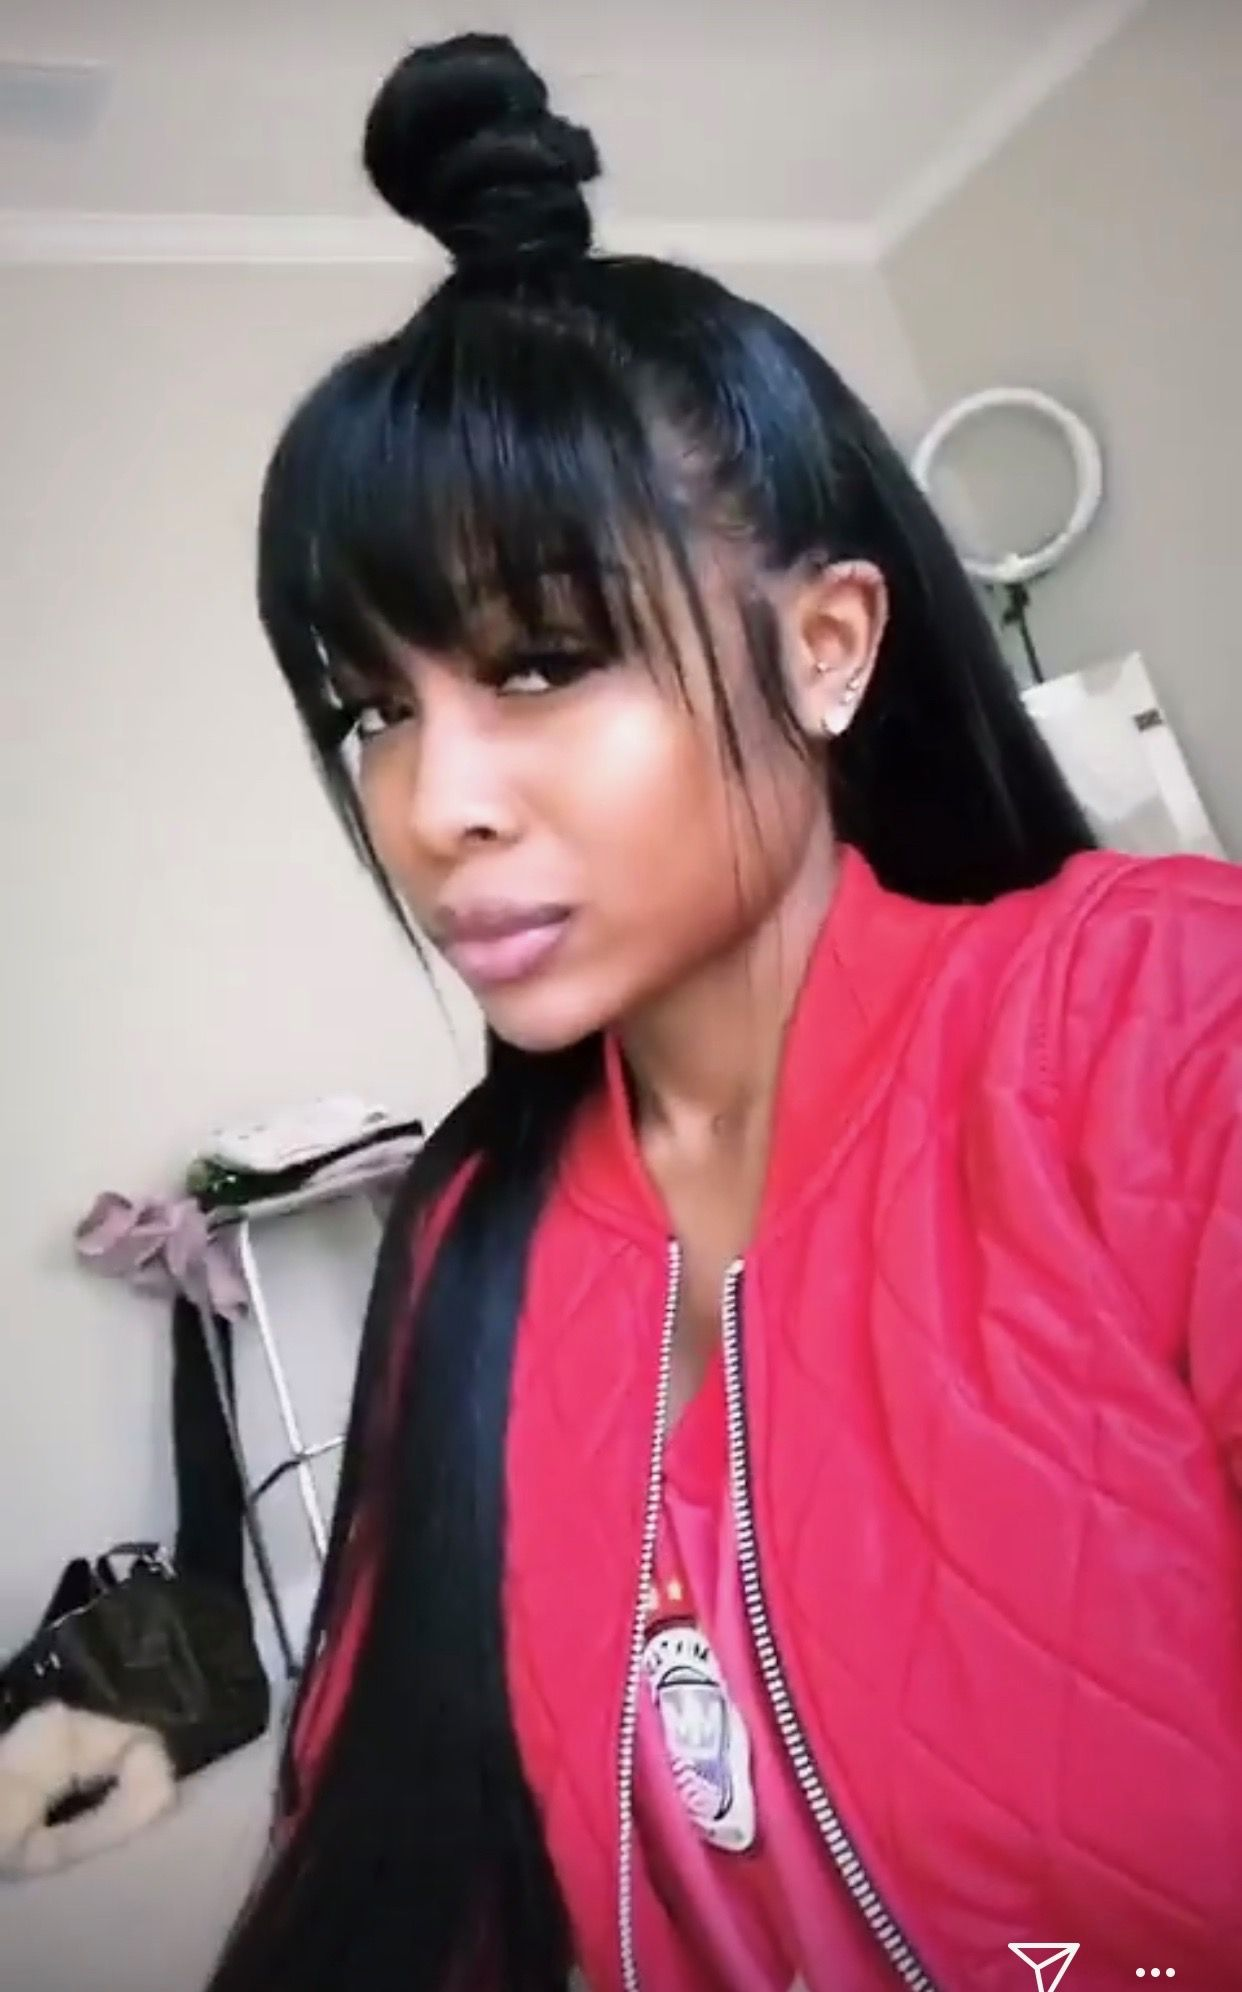 Chinese Bang Hairstyles : chinese, hairstyles, Iamtdoll, Hair,, Beauty,, Protective, Styles, Curly, Bangs,, Hairstyles, Straightening